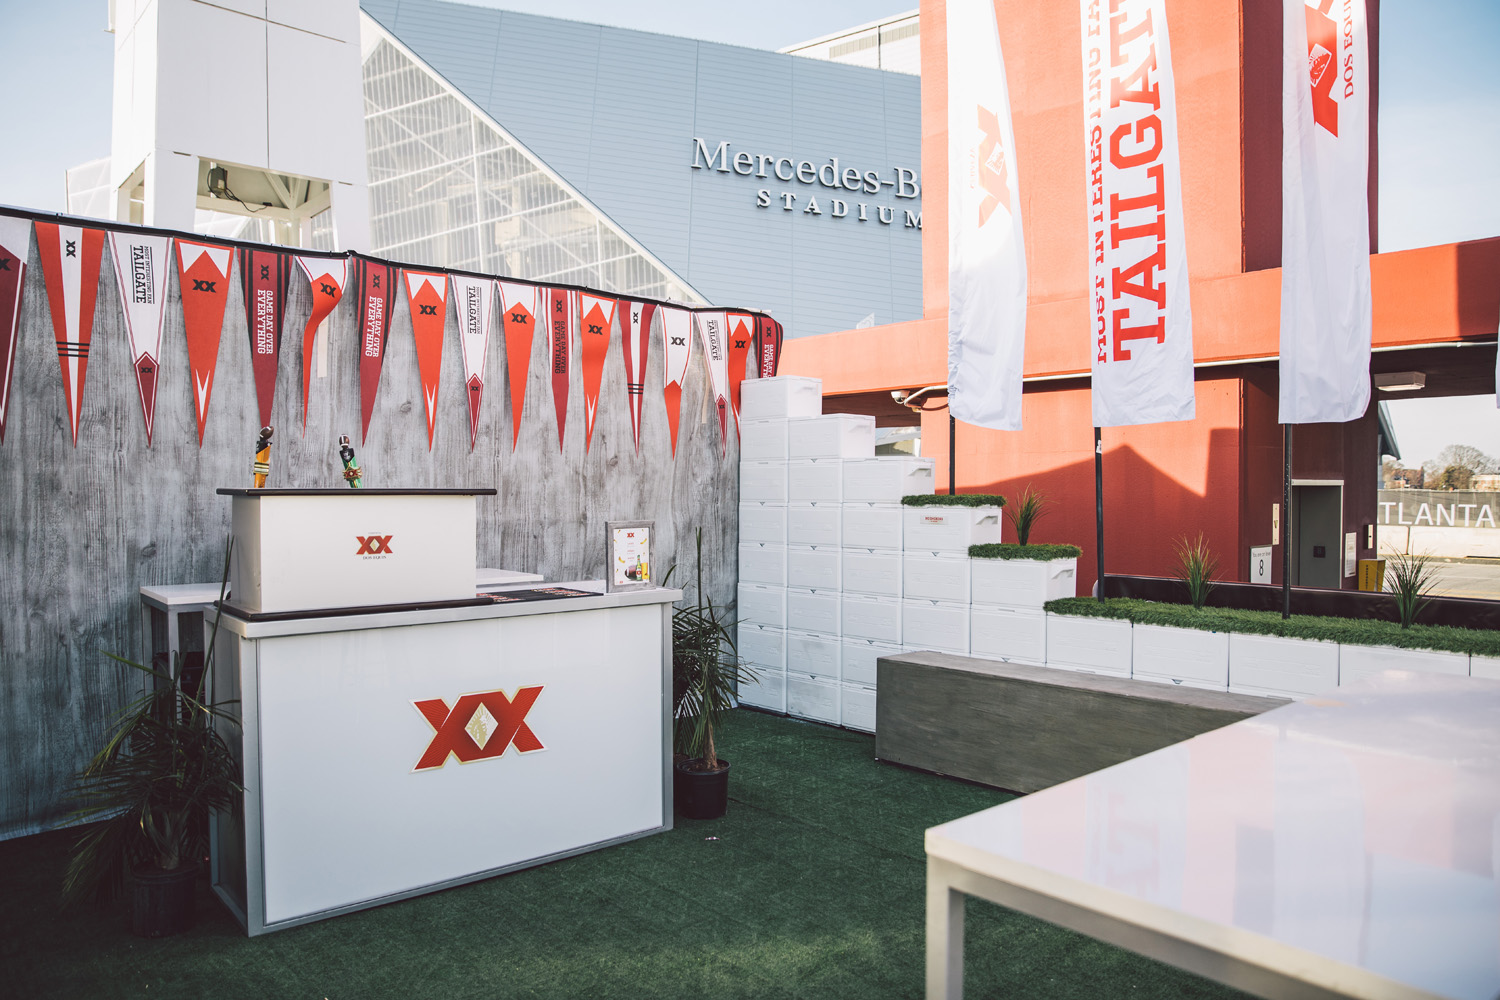 Dos Equis producing a VIP lounge during the SEC Championships for attending fans in Atlanta, GA